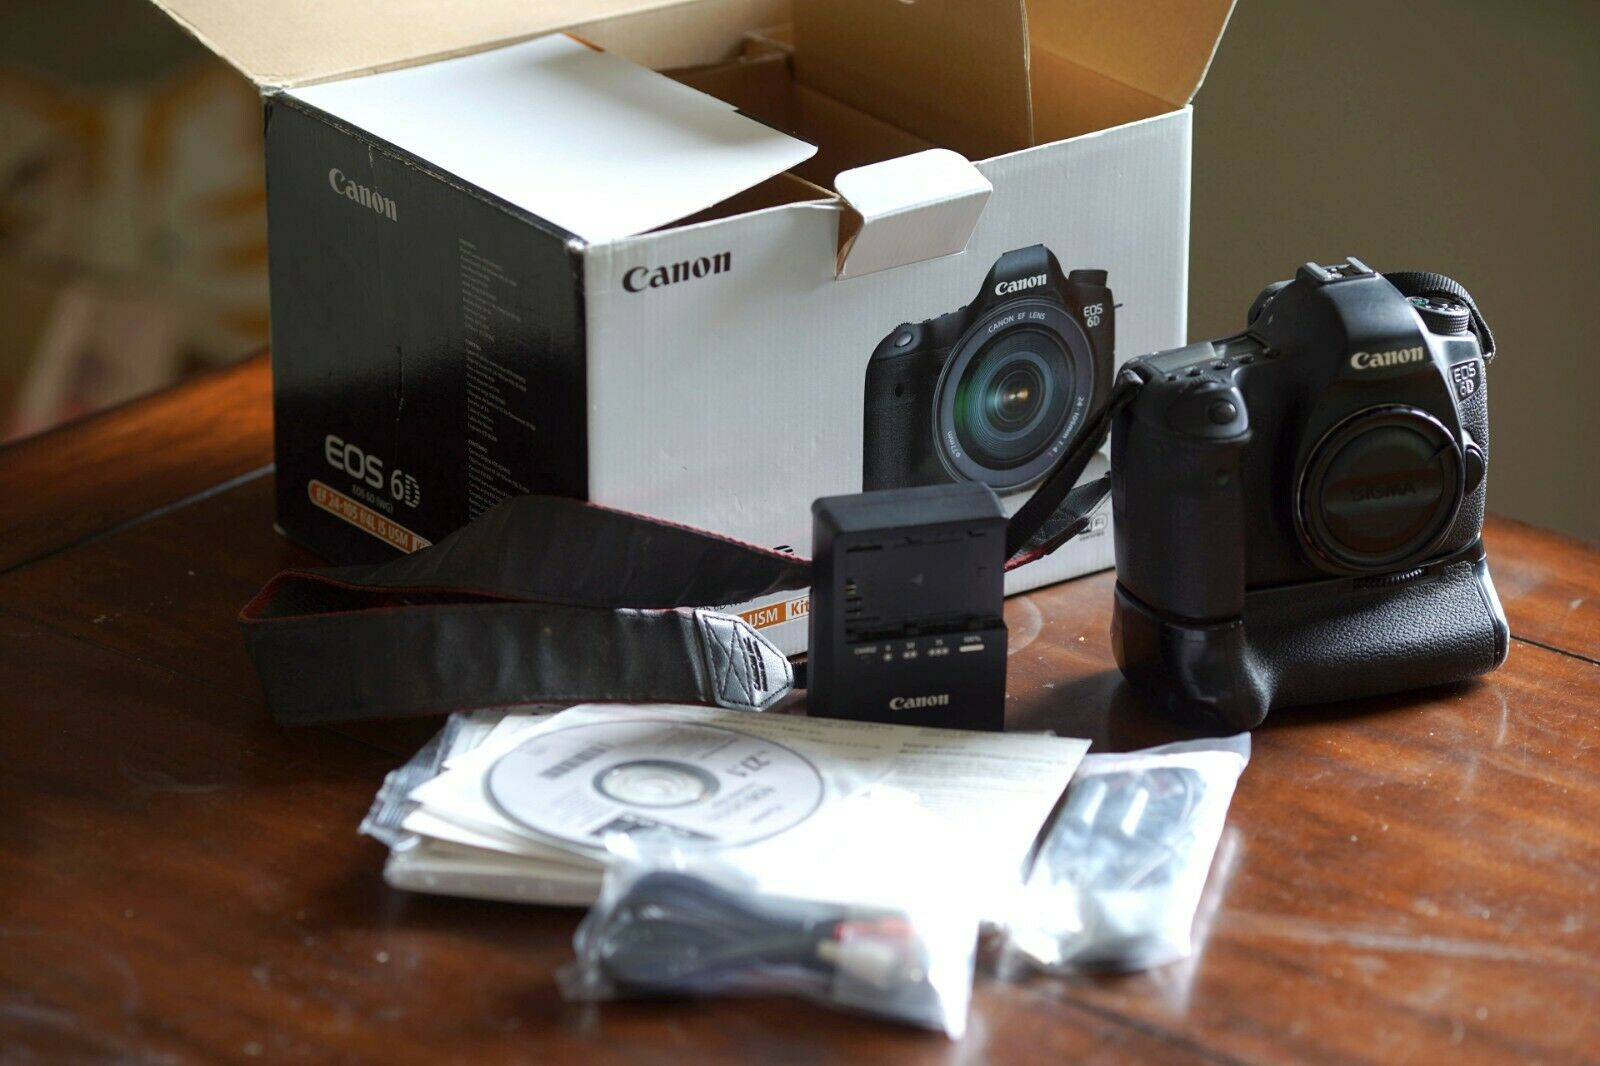 Canon EOS 6D 20.2MP Digital SLR Camera - Black Body Only - AS-IS For Parts - $208.50